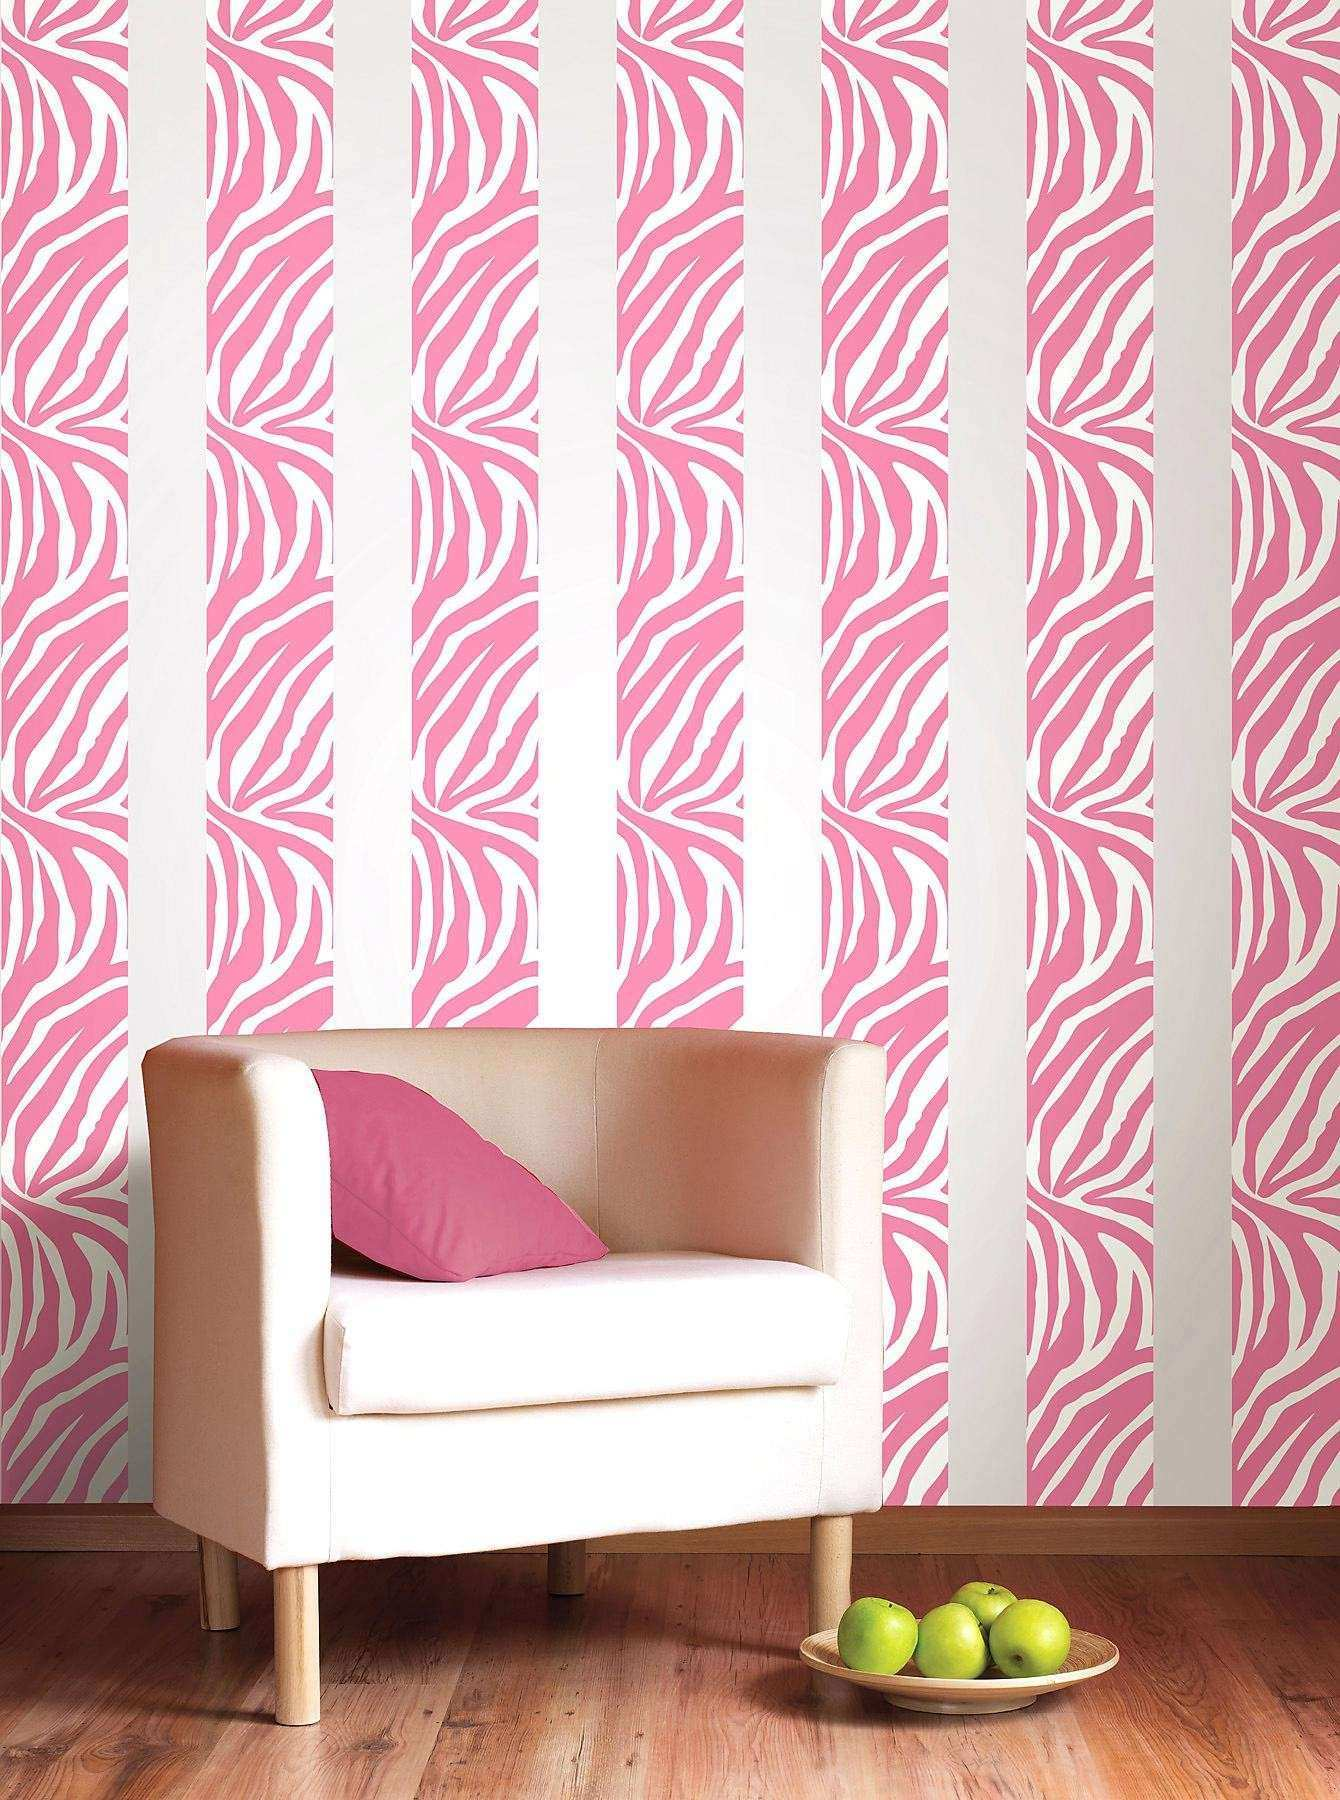 Animal Print Wall Decor Beautiful Zebra Print Decals For Walls Simple  Design Zebra Wall Decor Peachy